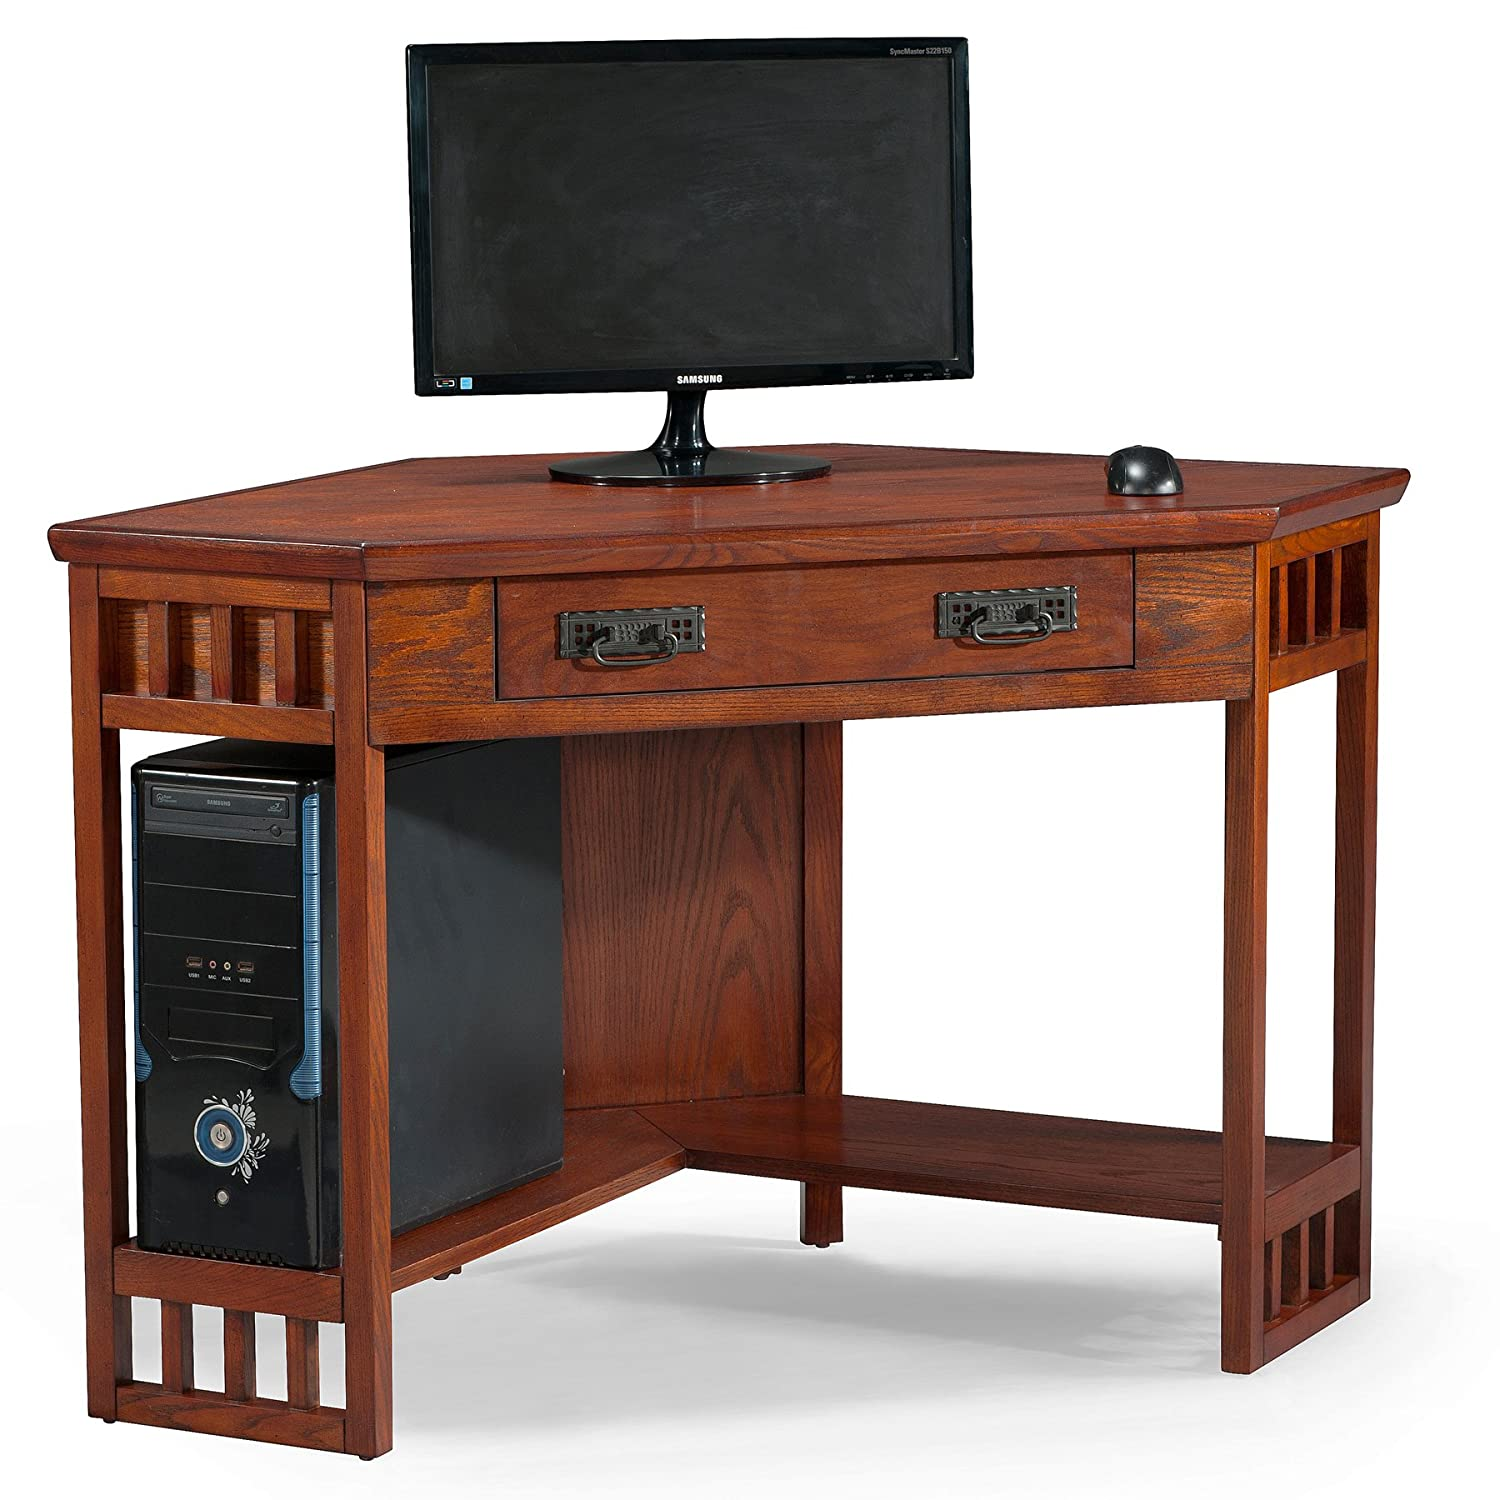 home office corner desks. Amazon.com: Leick Corner Computer And Writing Desk, Mission Oak Finish: Kitchen \u0026 Dining Home Office Desks